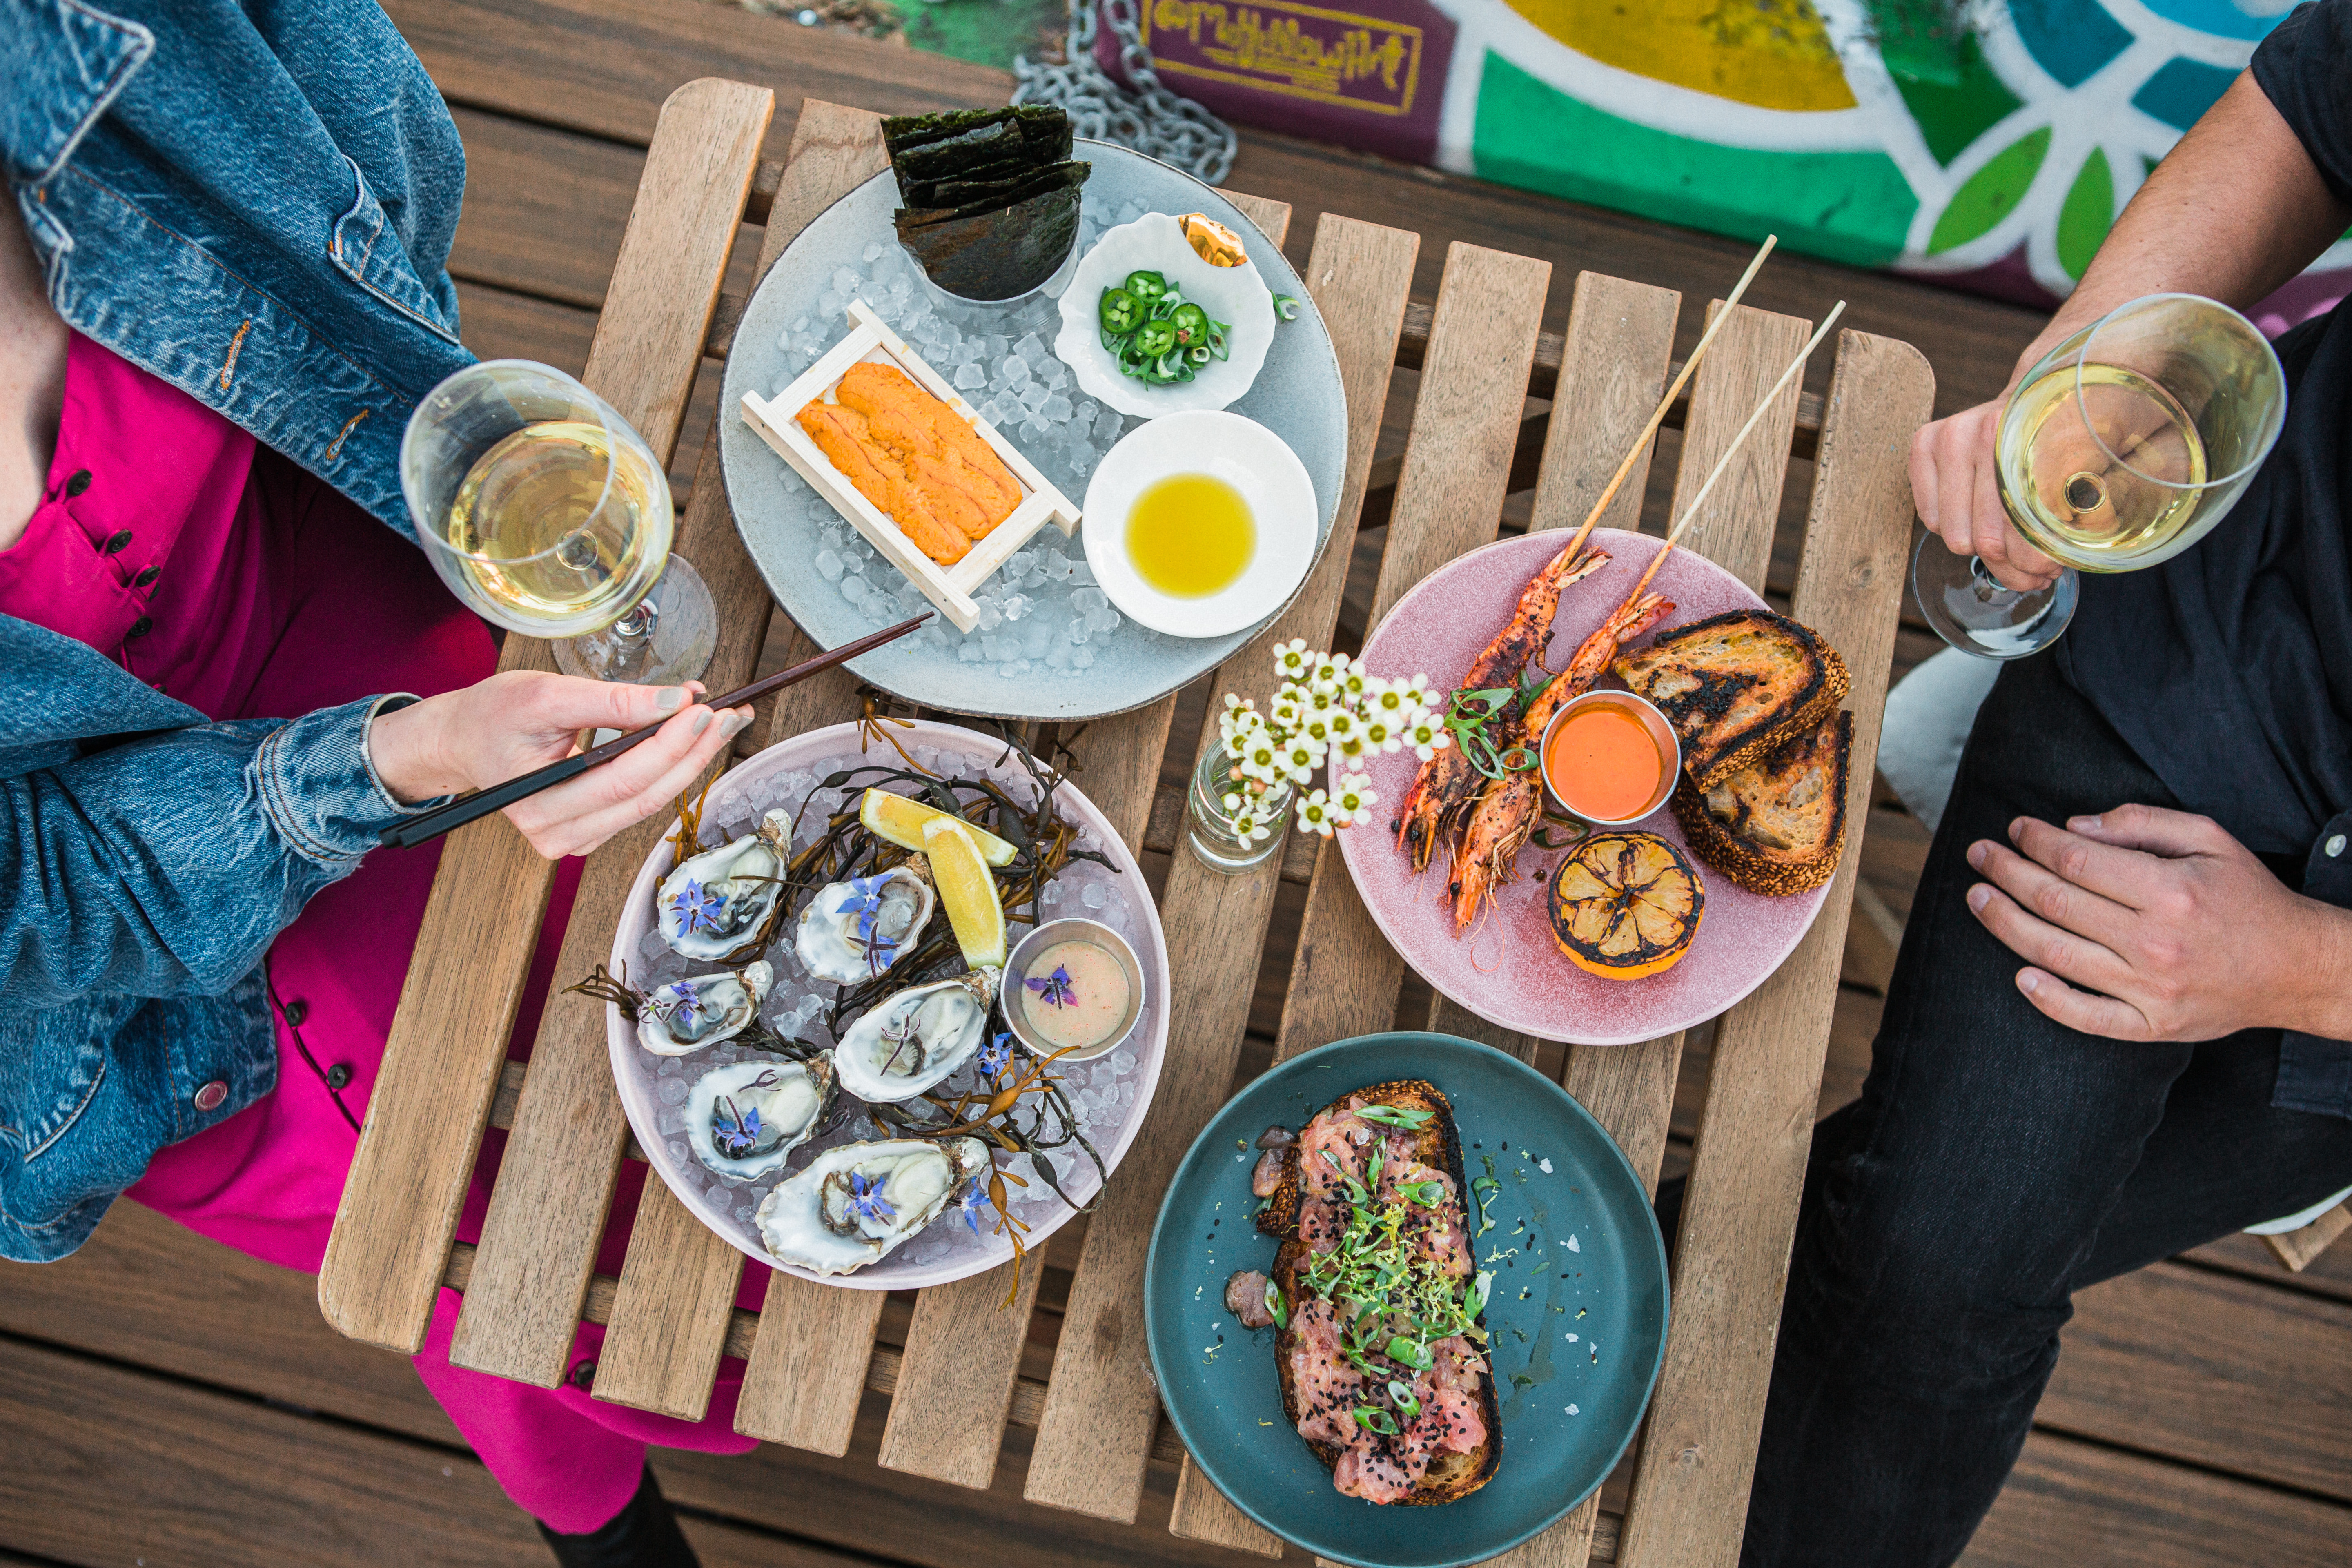 Two people shown from overhead with plates of seafood and grilled fish at Crudo e Nudo.